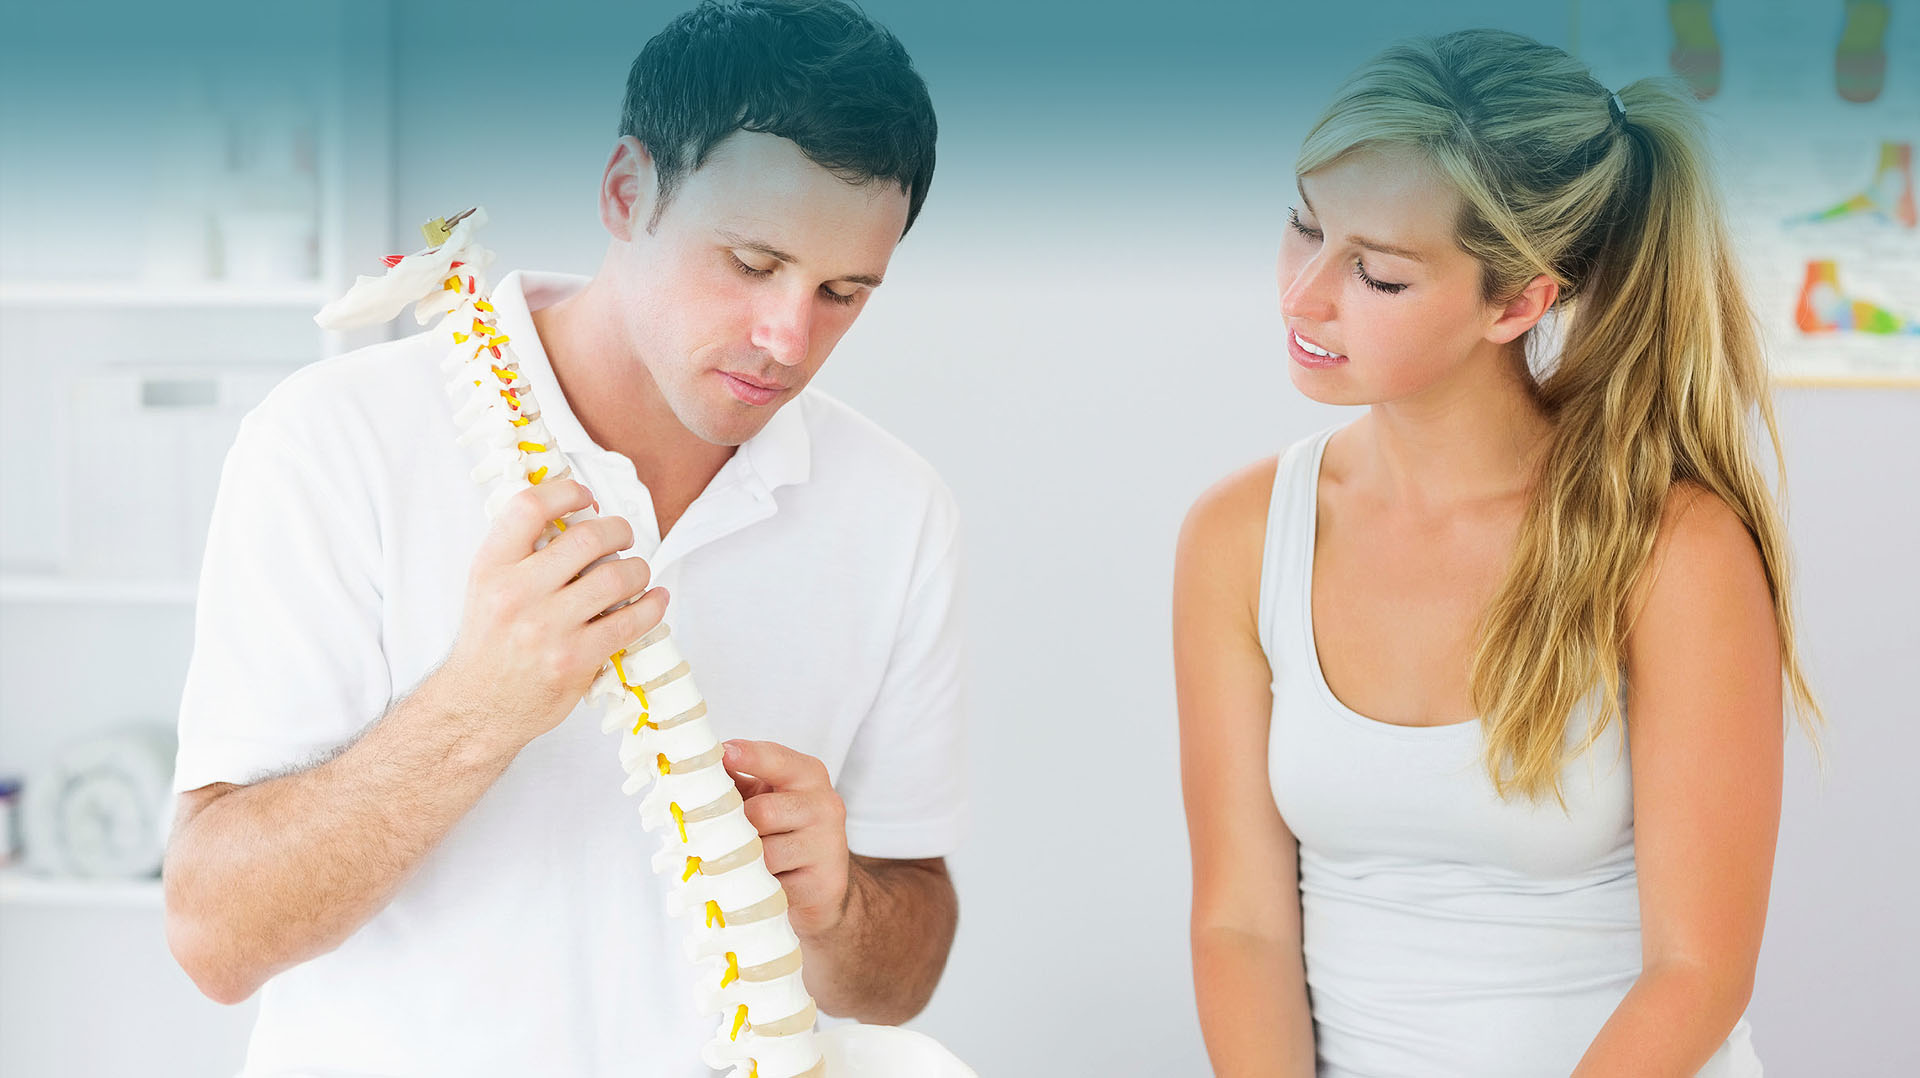 South Denver Chiropractor